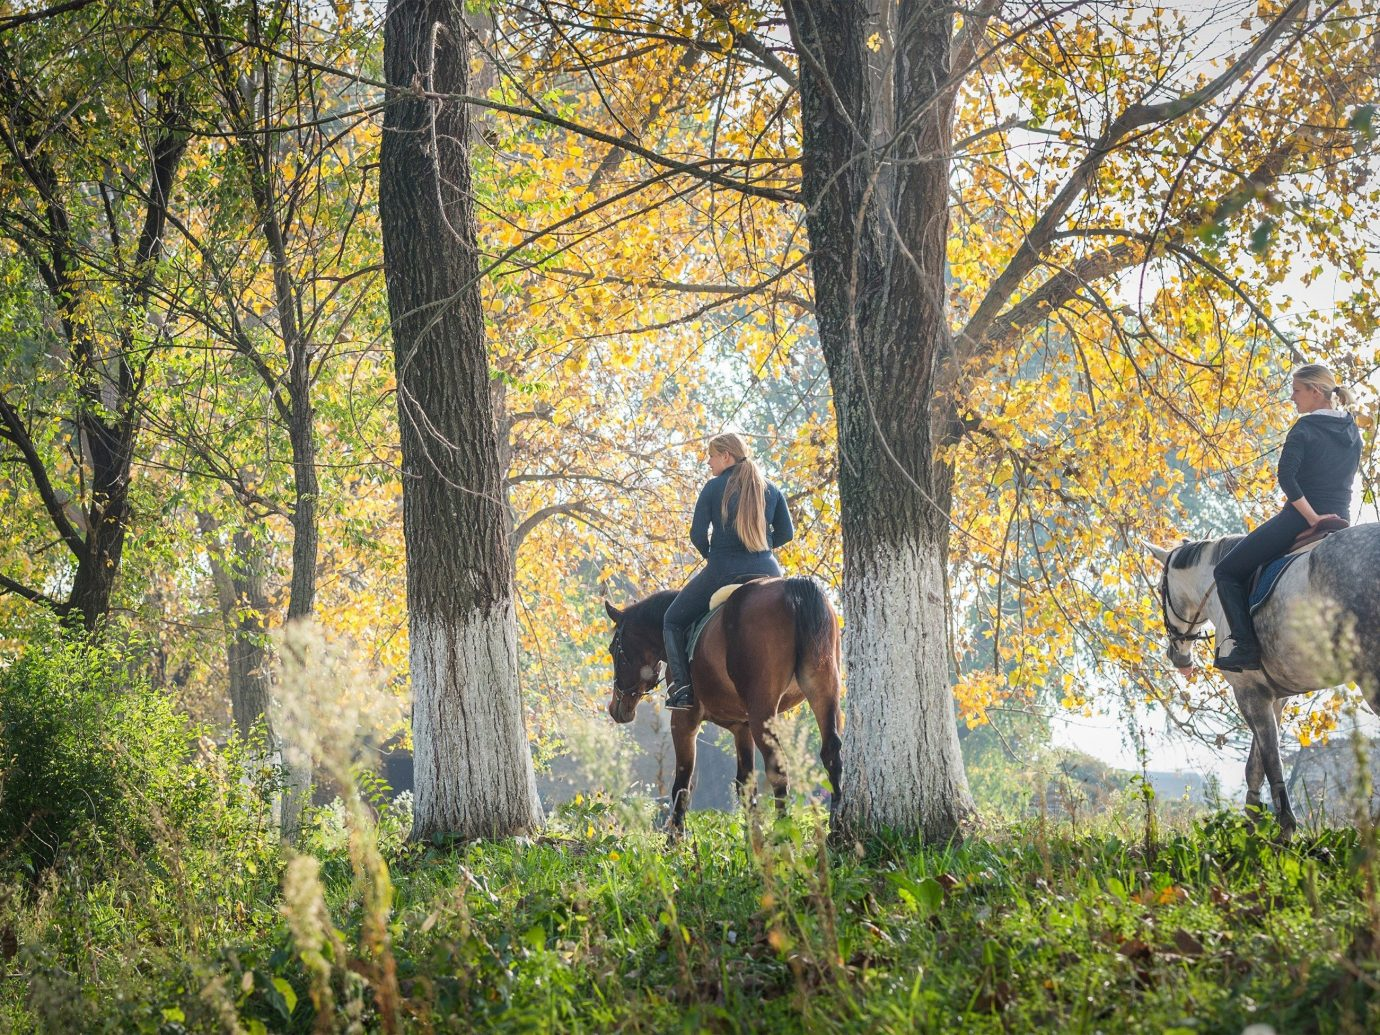 Trip Ideas tree outdoor grass animal habitat mammal horse natural environment pasture Forest woodland animal sports autumn meadow horse like mammal trail riding wooded lush